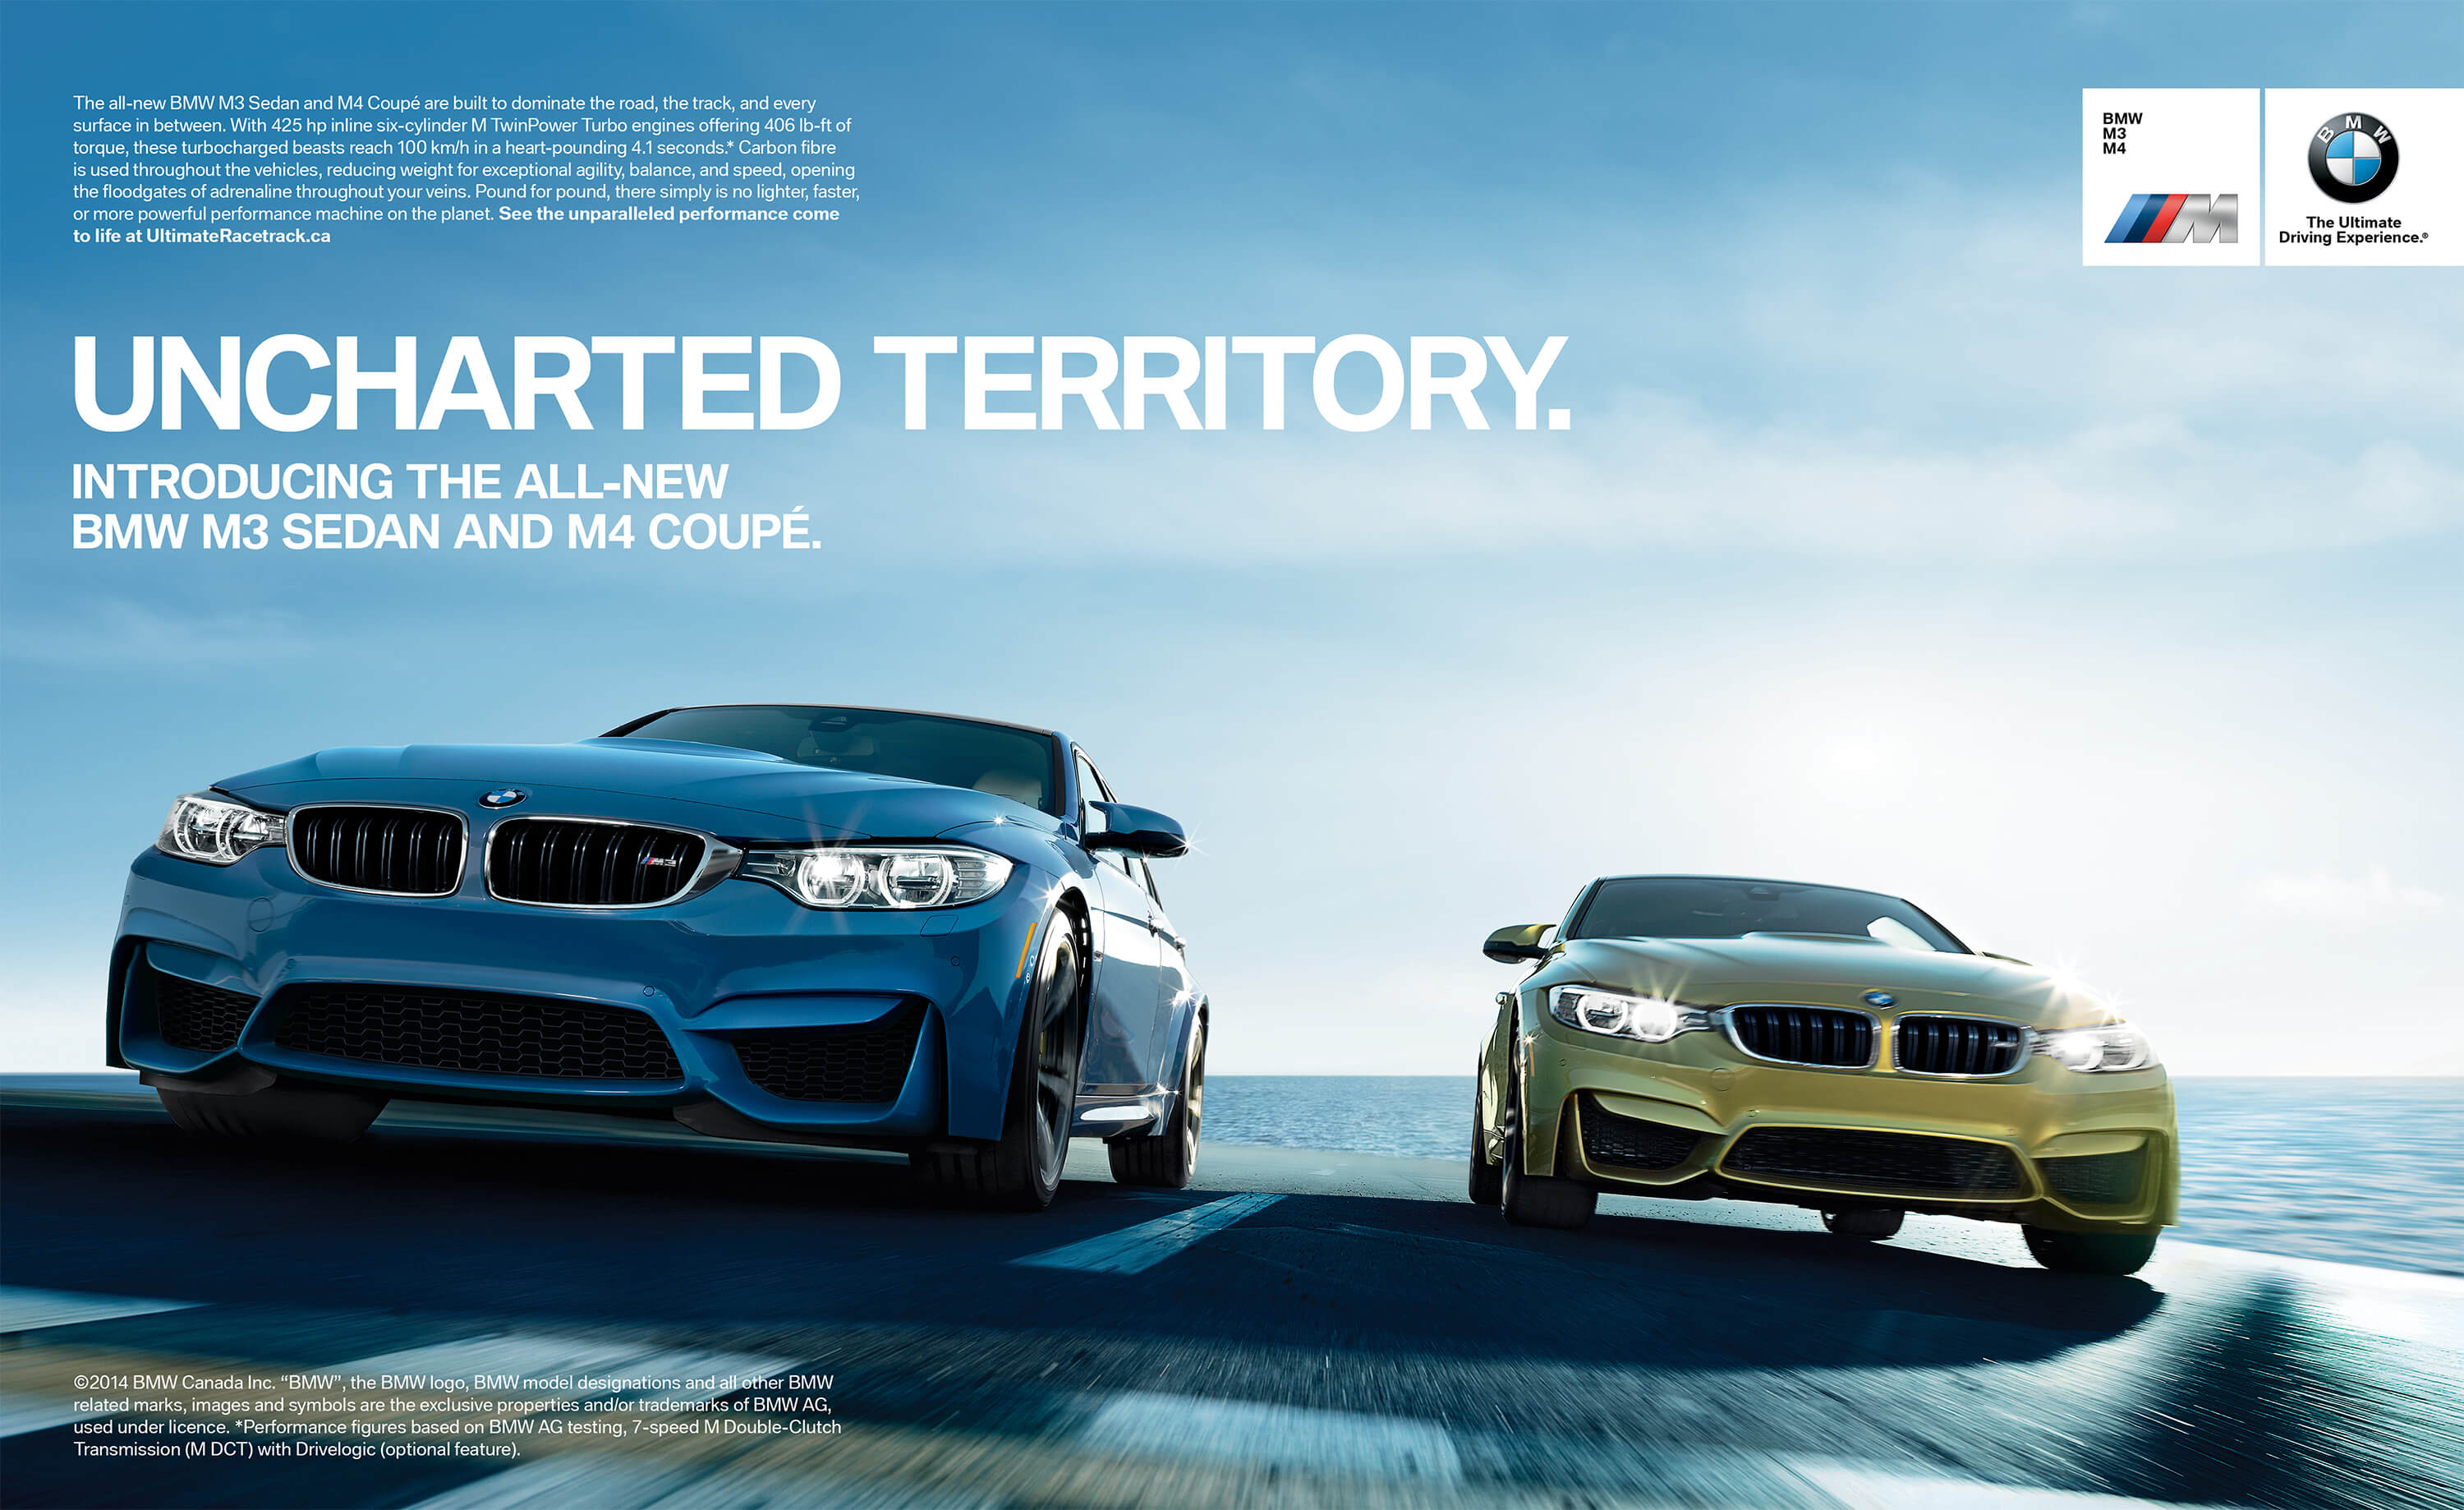 BMW_M4_DPS_UNCHARTED copy